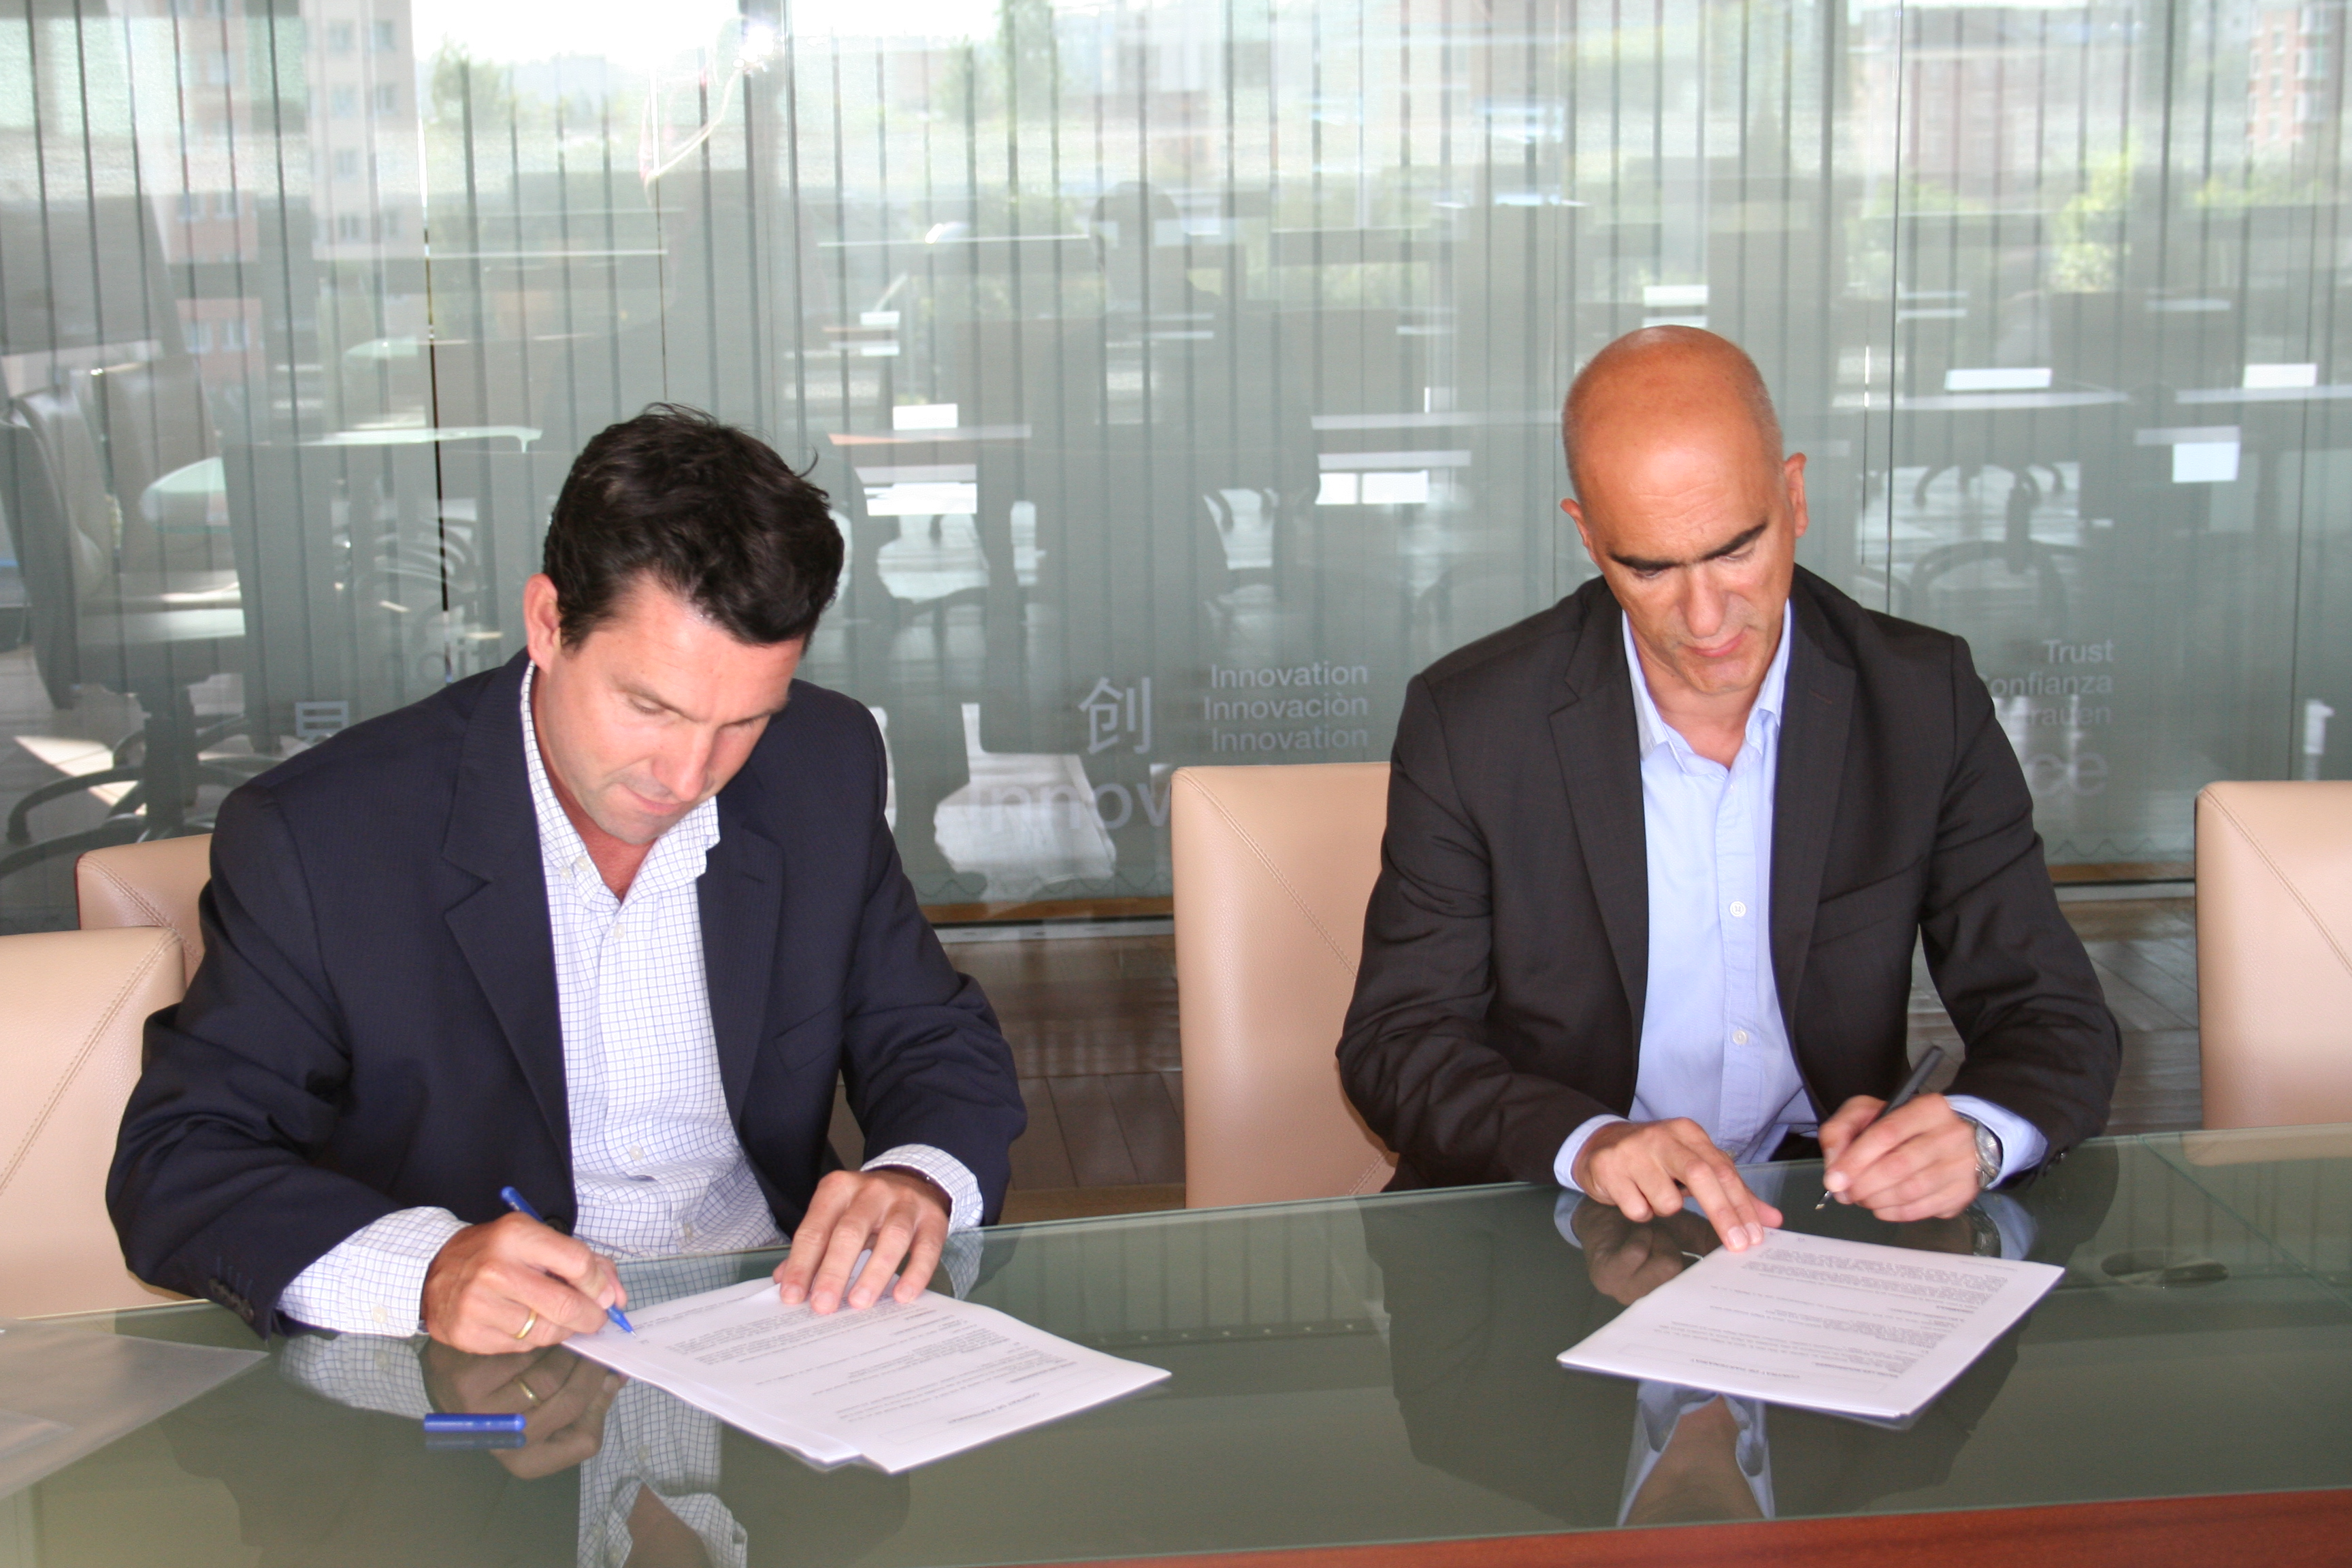 Fabien Poggi, Manager of Sage's Export division (left) and Guy Leclercq, co-founder and CEO of Deveho Consulting